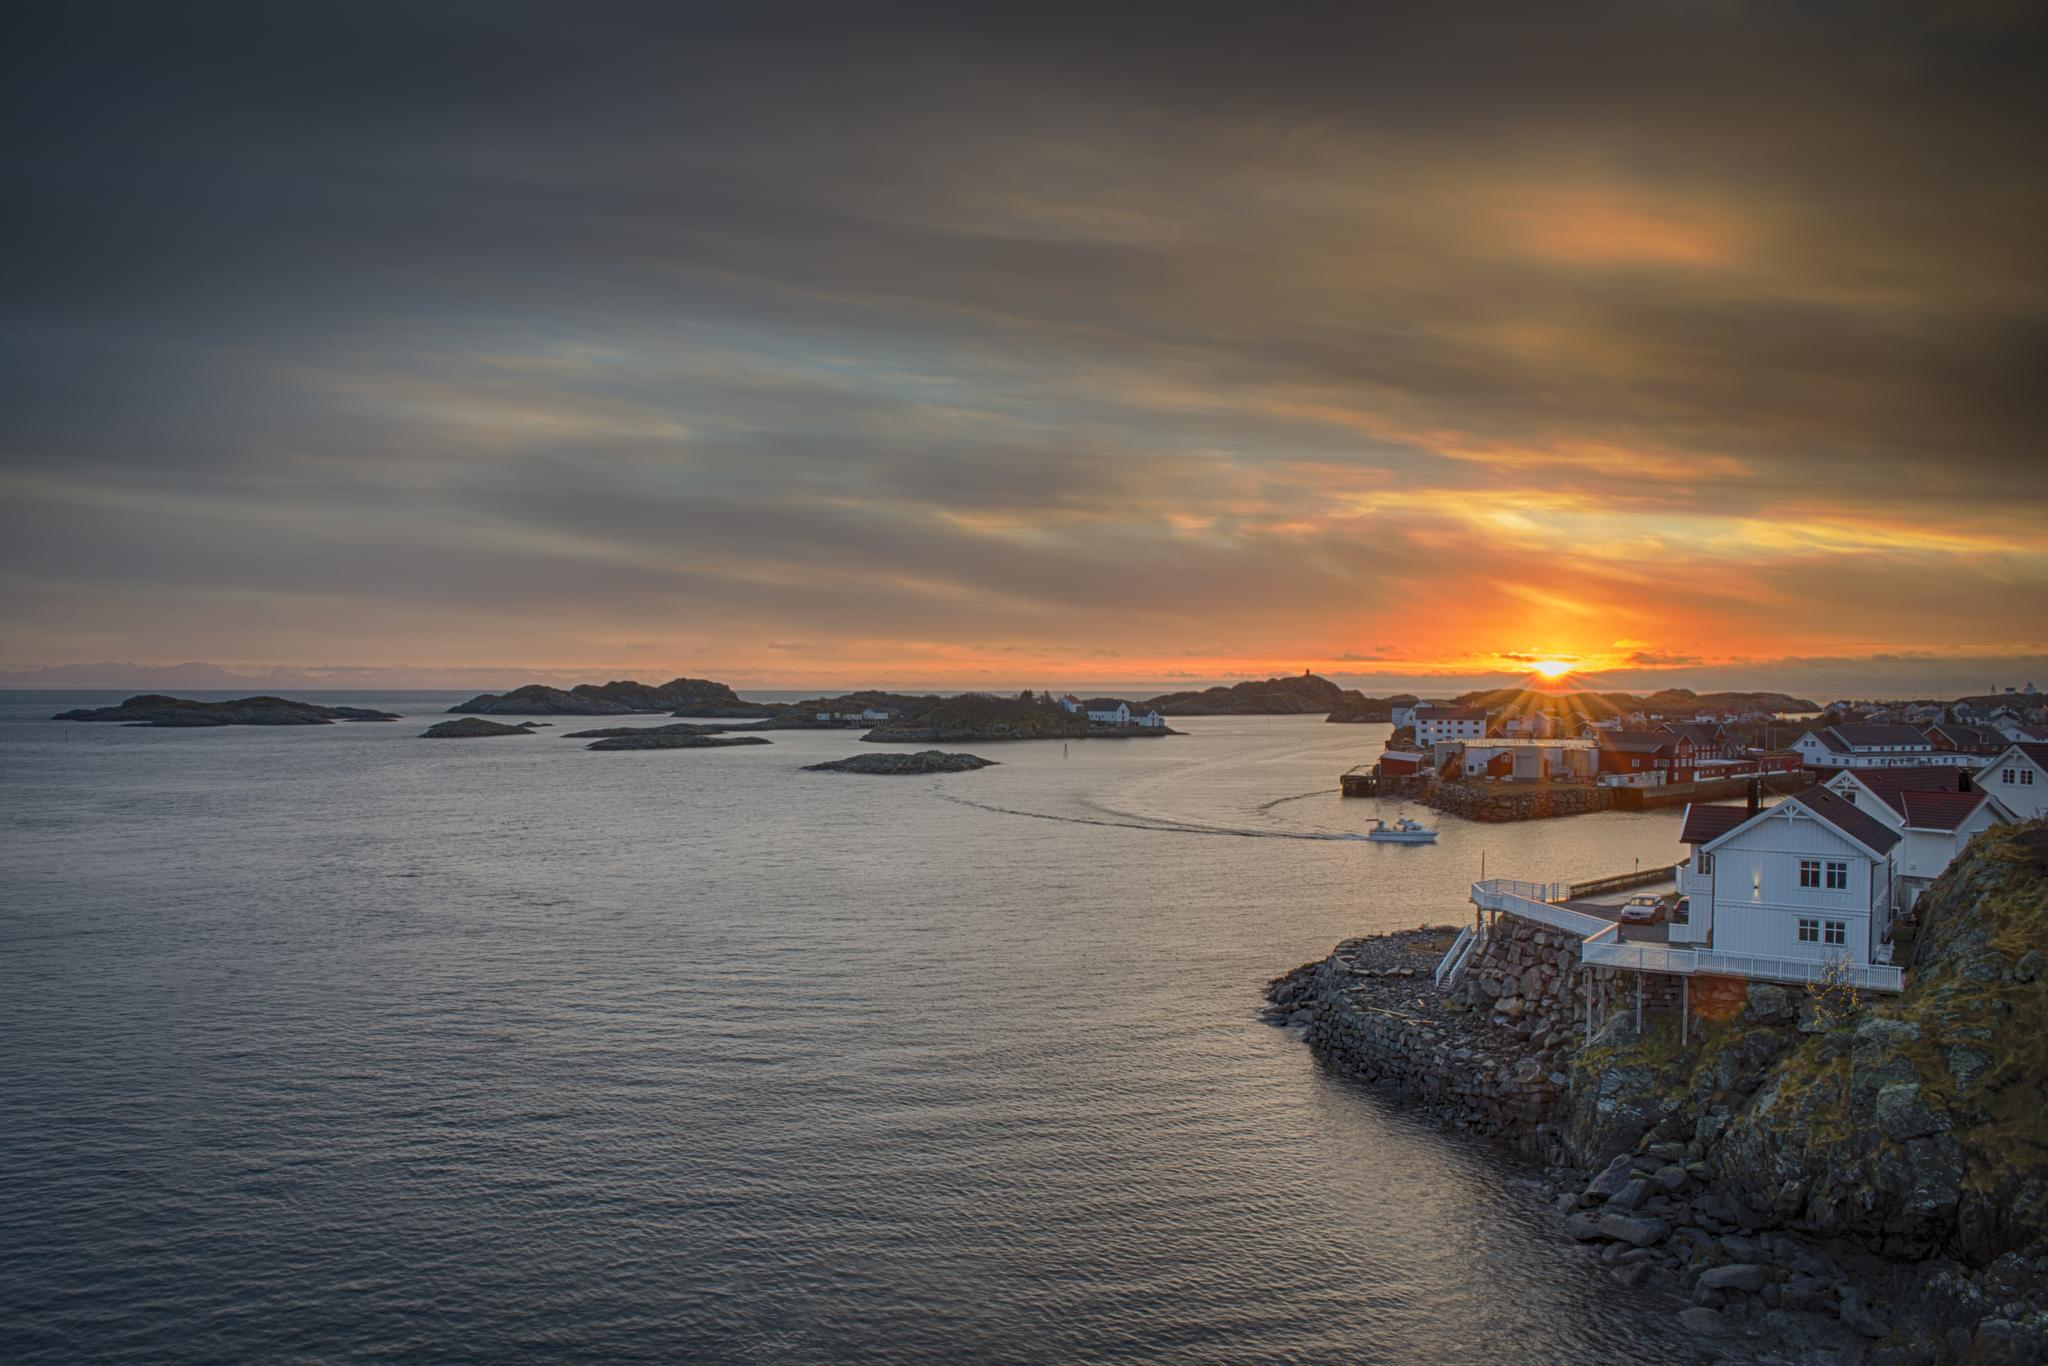 Sunset at 13:00 by Petter Gundhus - Photography